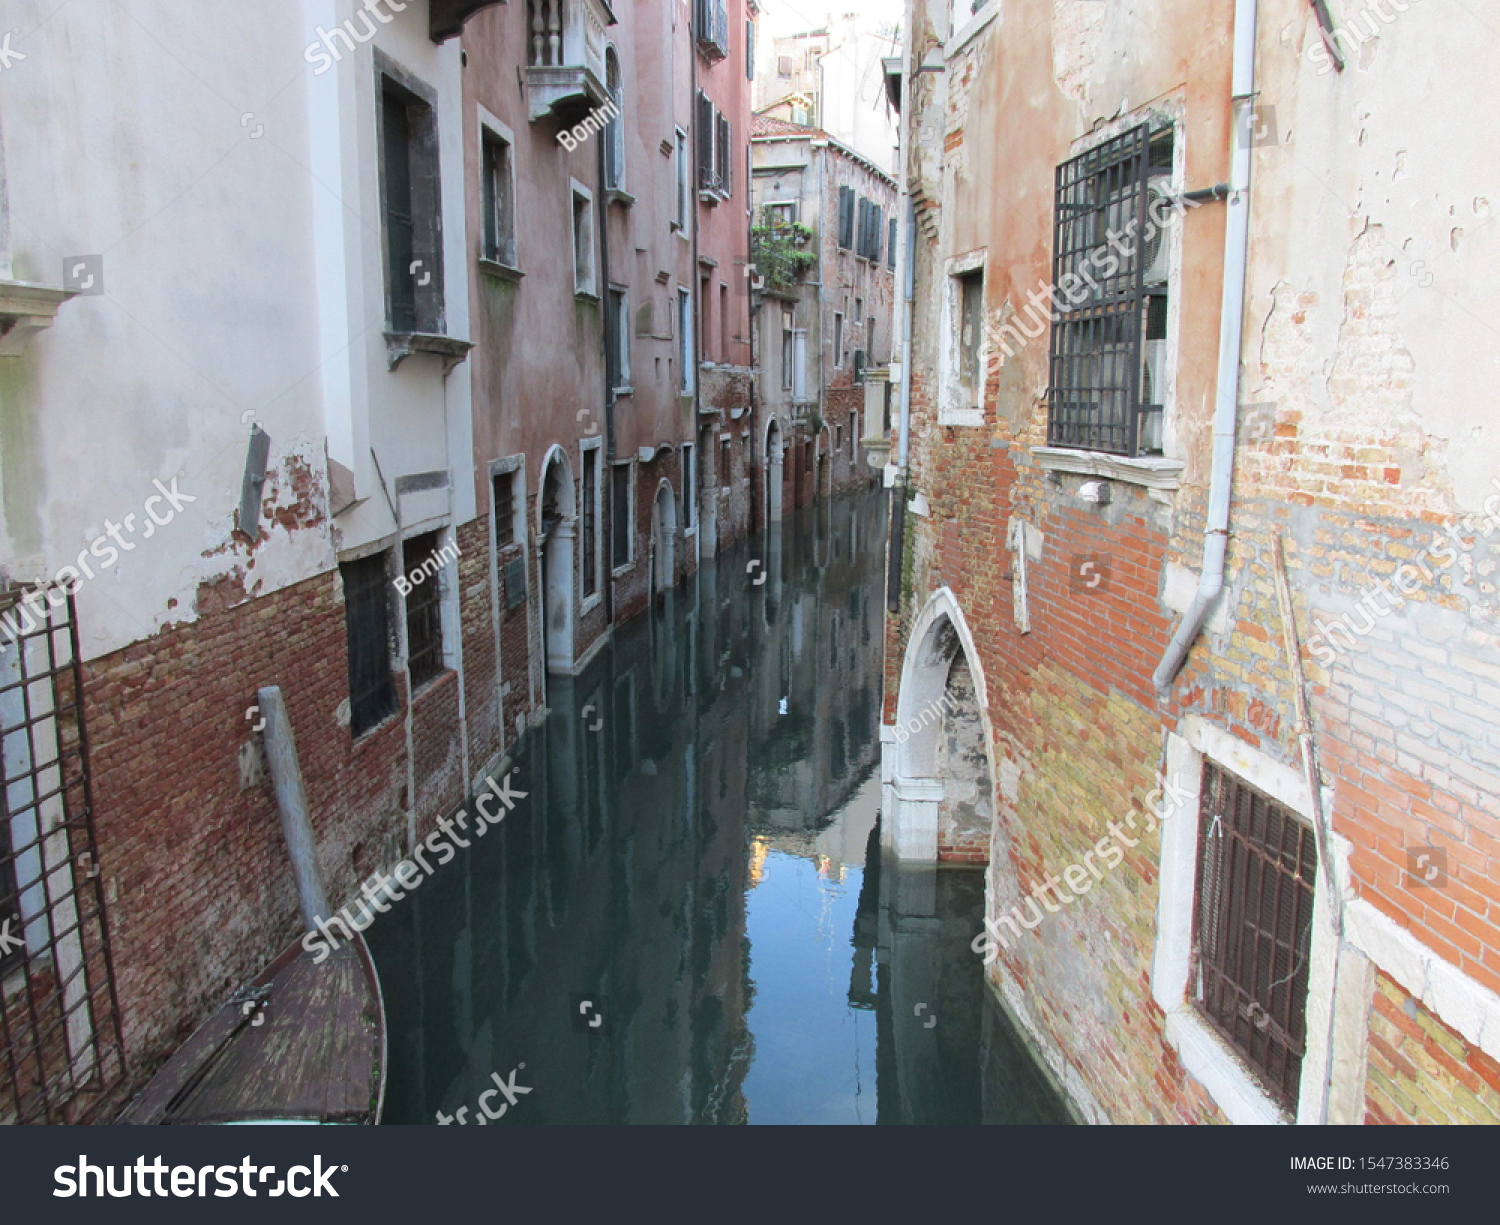 Veneci Italy Europe November 11 2014 Venice, the capital of the Veneto region of northern Italy, is made up of over 100 small islands in a lagoon on the Adriatic Sea. #1547383346